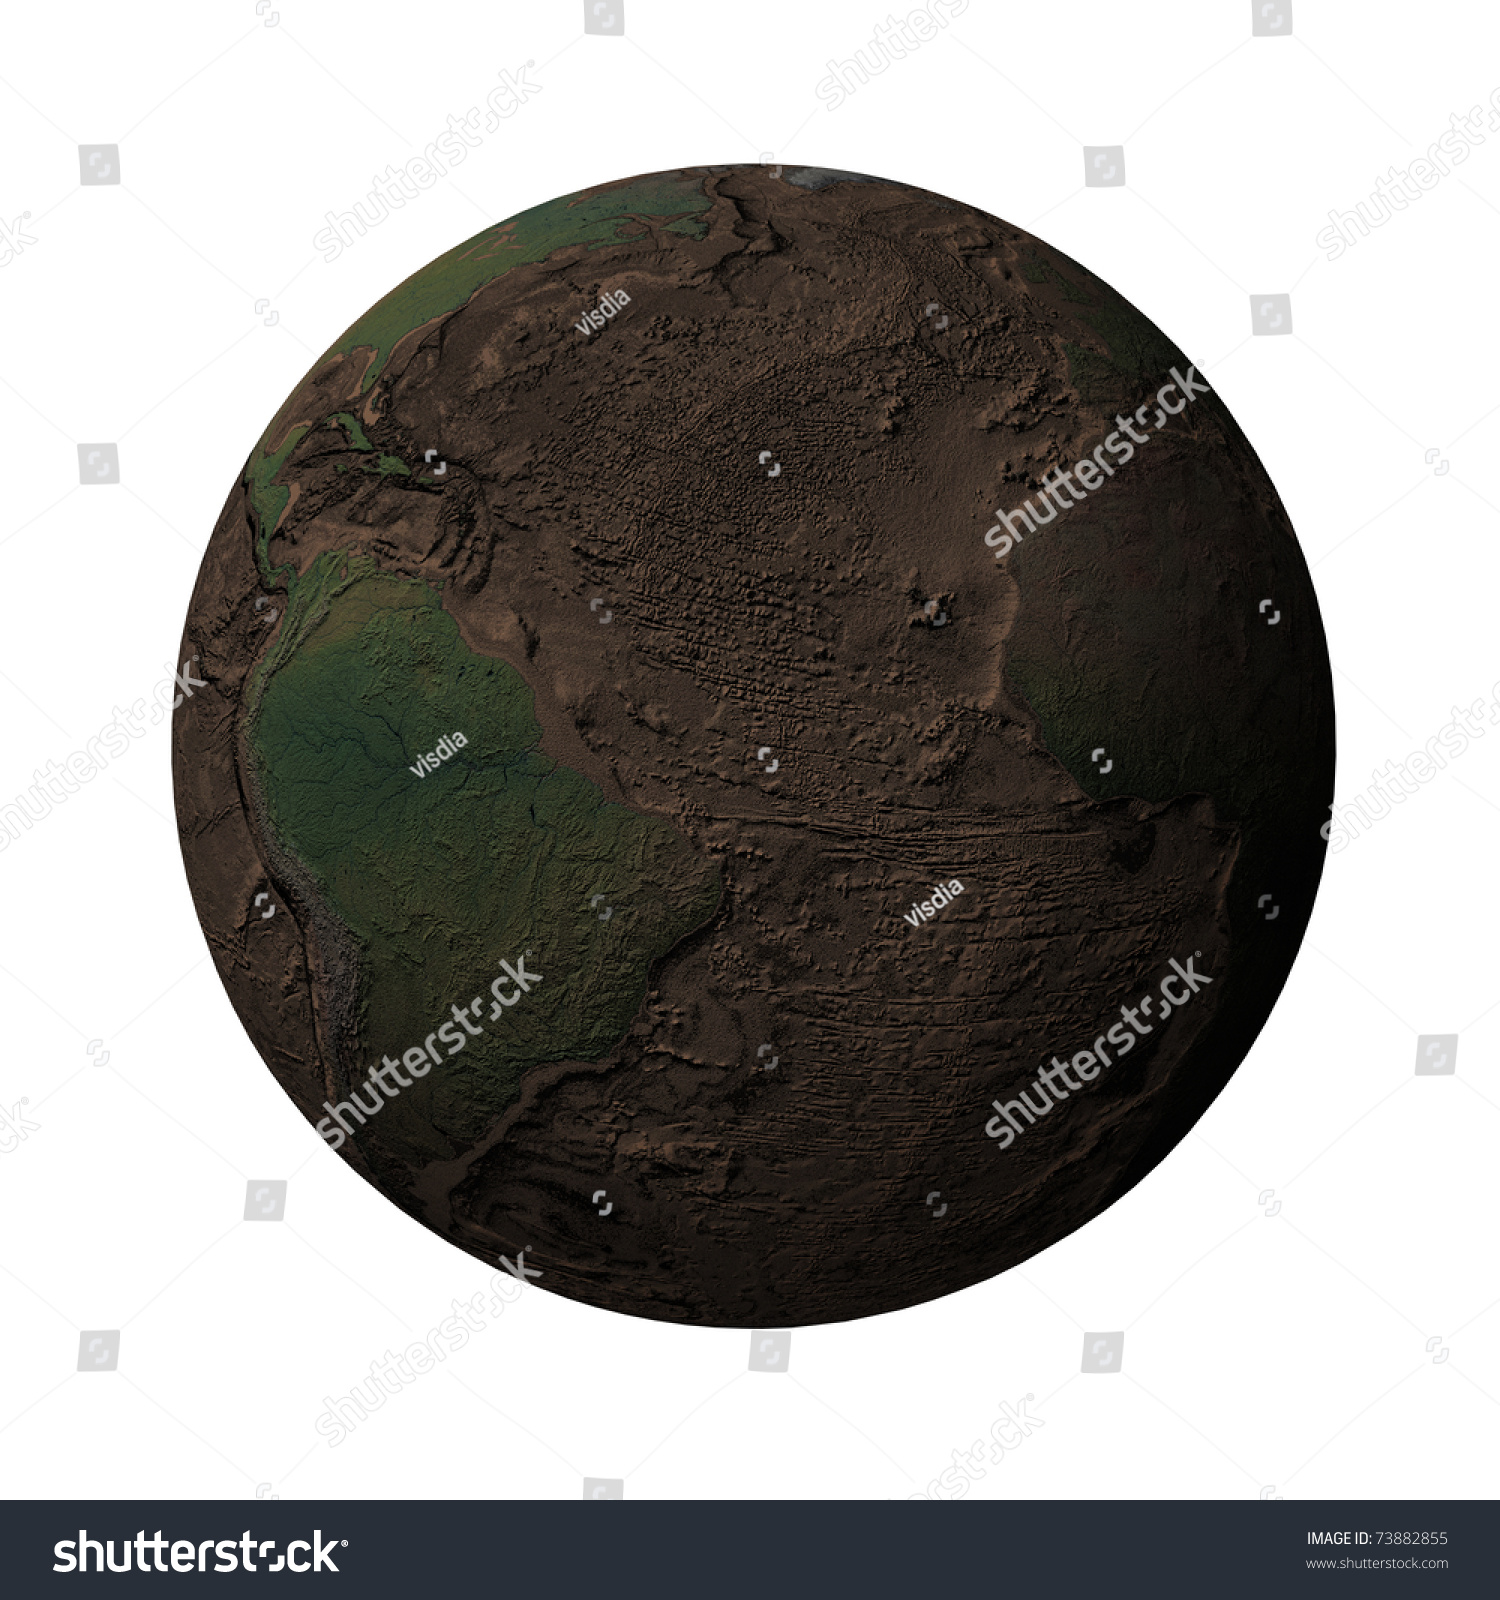 Earth without water plants north south stock illustration 73882855 earth without water plants north south stock illustration 73882855 shutterstock ccuart Choice Image